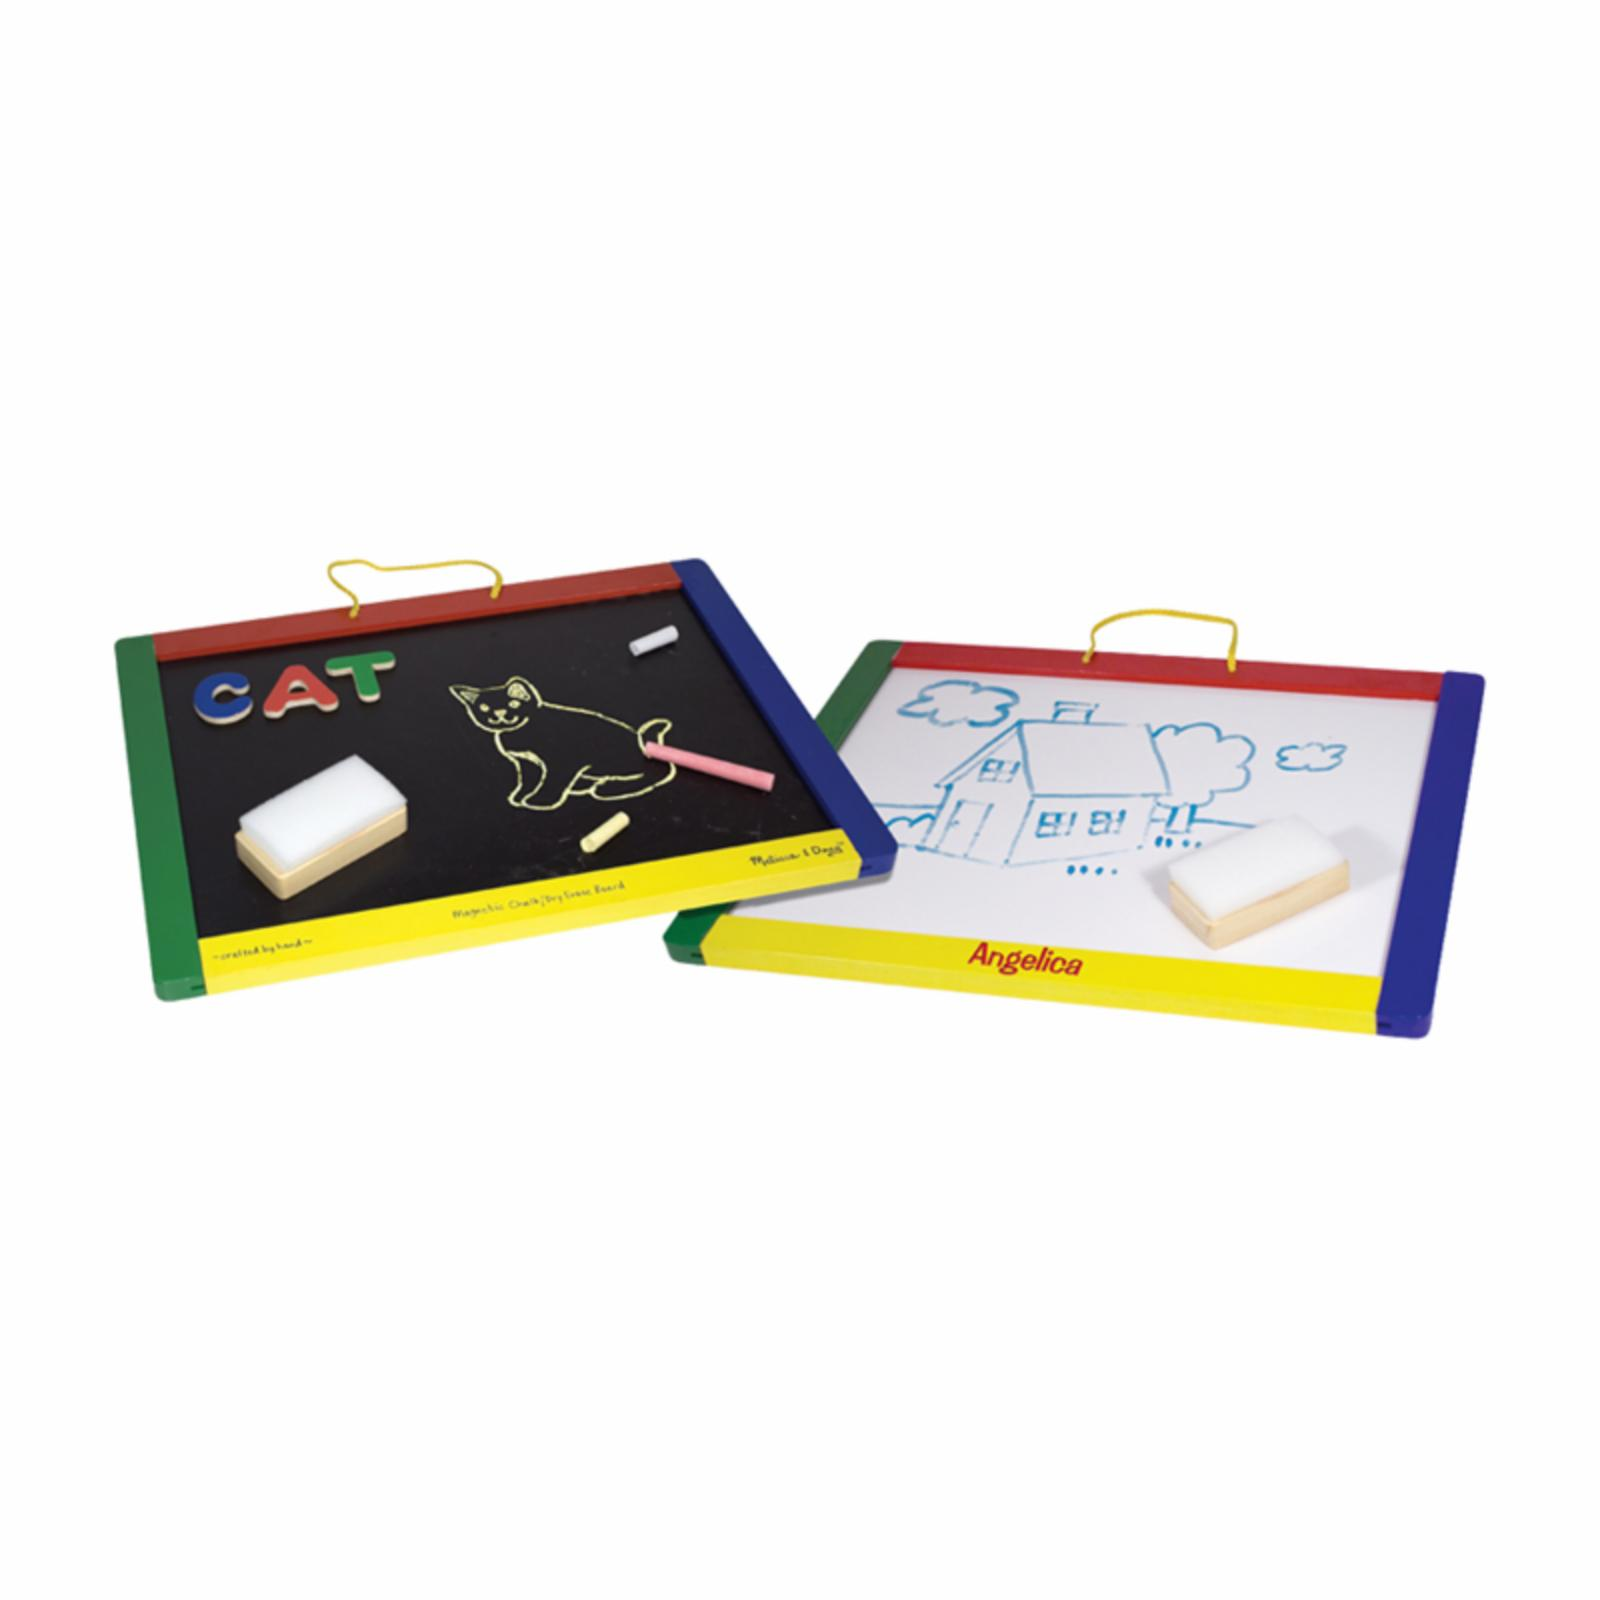 Melissa and Doug Personalized Magnetic Chalkboard/Dry-Era...